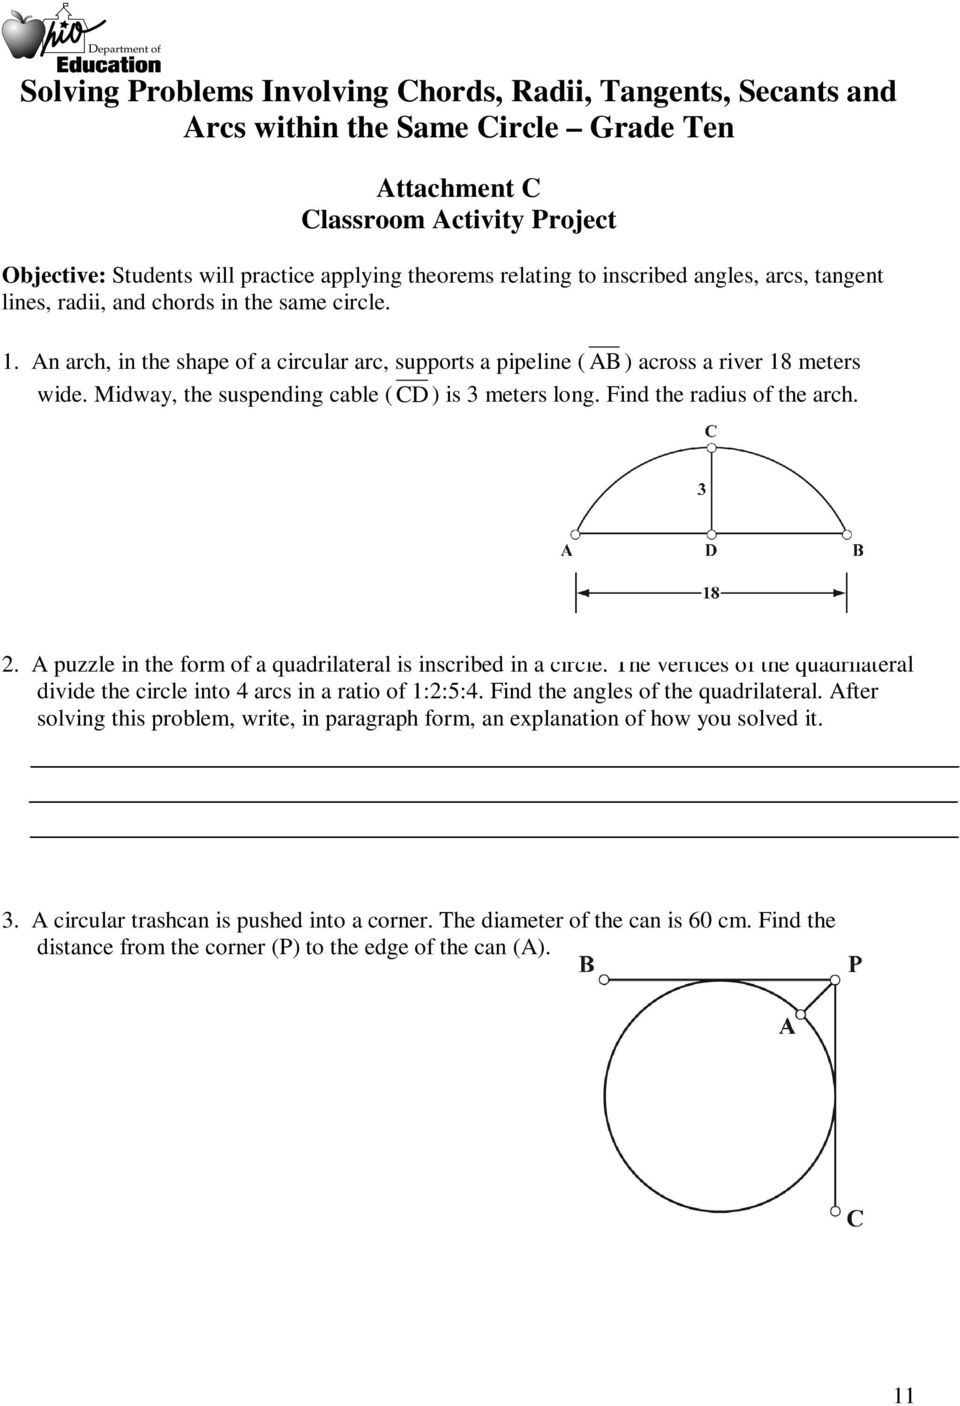 A puzzle in the form of a quadrilateral is inscribed in a circle. The vertices of the quadrilateral divide the circle into 4 arcs in a ratio of 1:2:5:4. Find the angles of the quadrilateral.